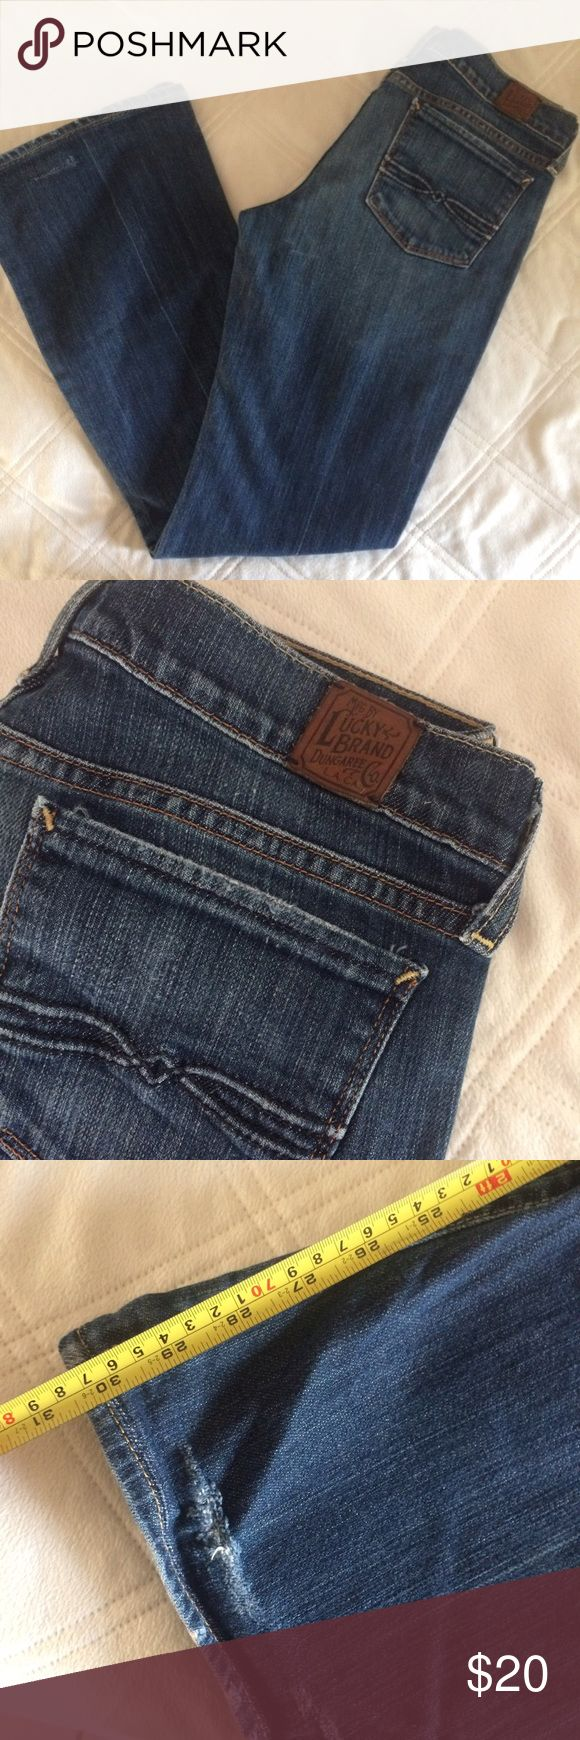 LUCKY JEANS DARK WASH LONG INSEAM SIZE 8/29 Worn but still lots of life! I say broken in jeans are better than new anyways! These jeans have been hemmed, and there is some wear at the bottom. Please see the photos for the condition and length. Still lots of life left in these everyday staple jeans! Lucky Brand Jeans Boot Cut